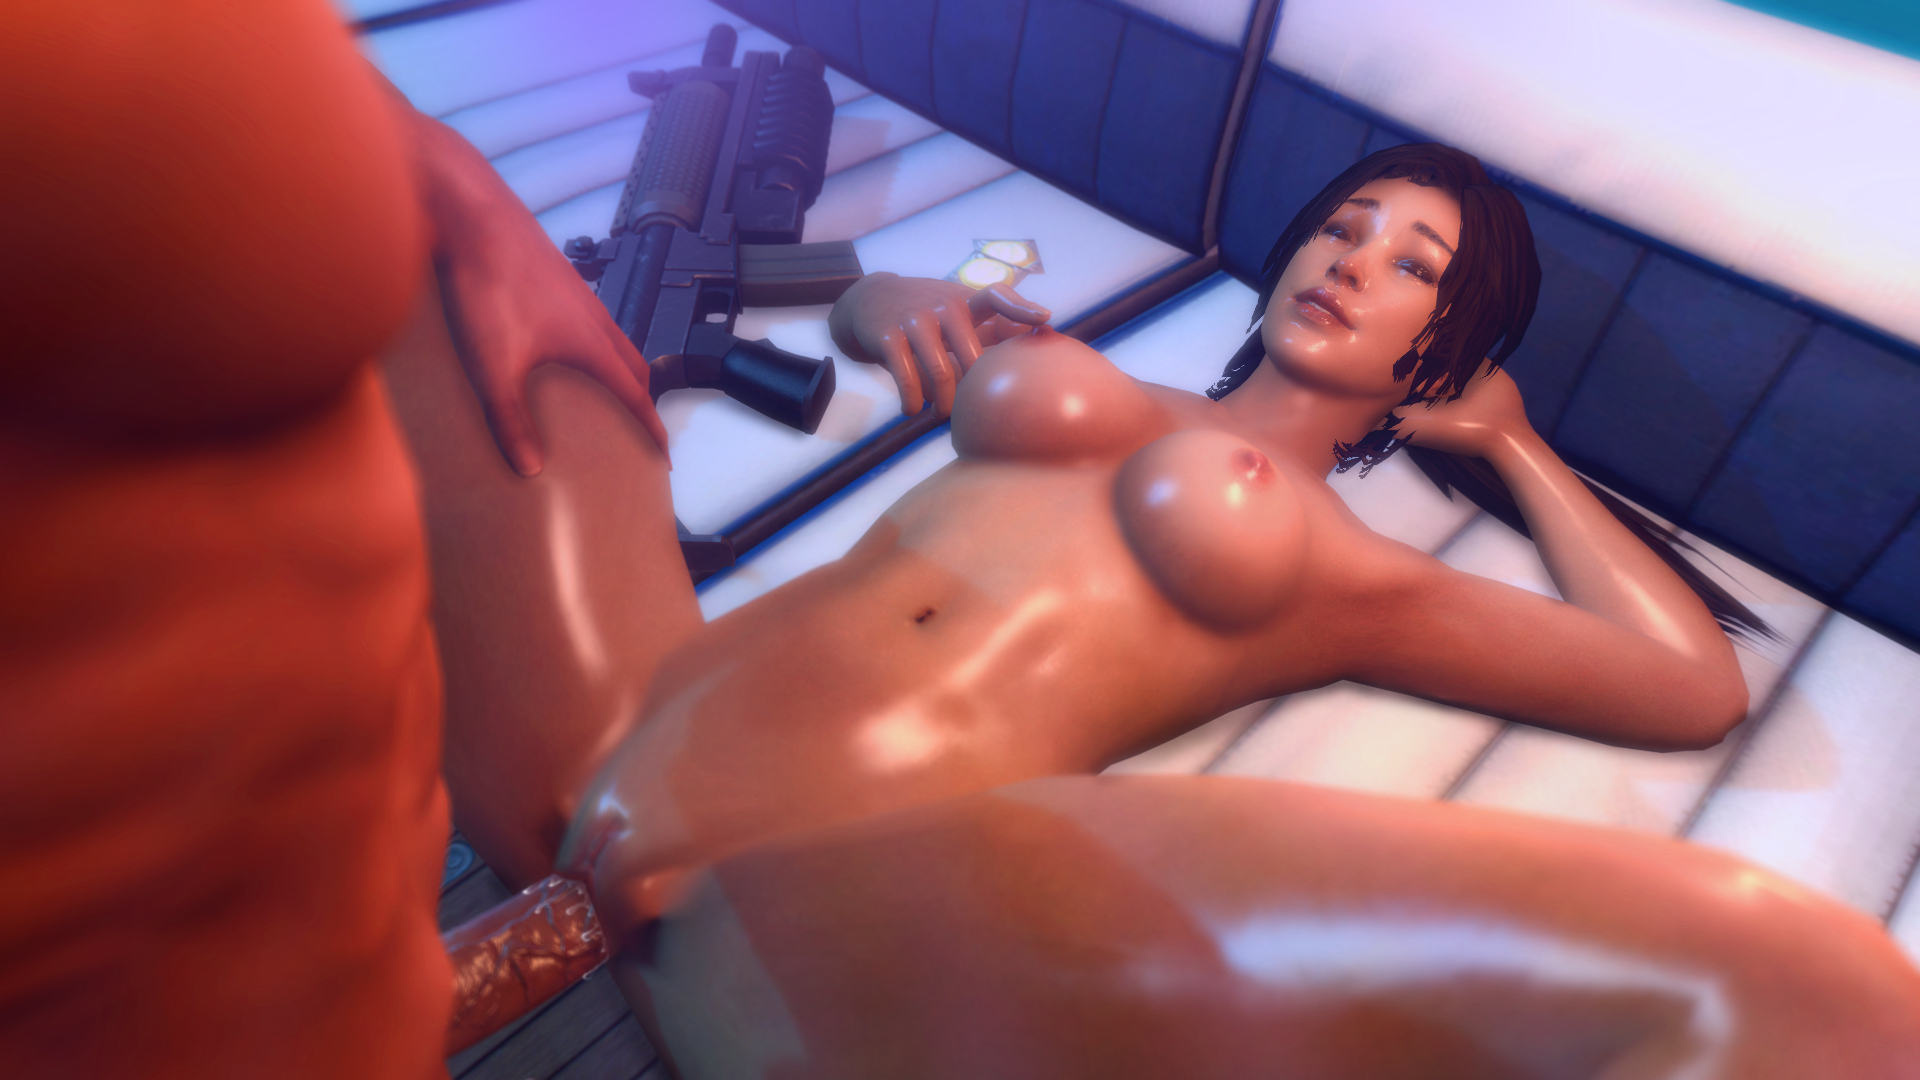 Sexy lara croft porno videos fucked tubes